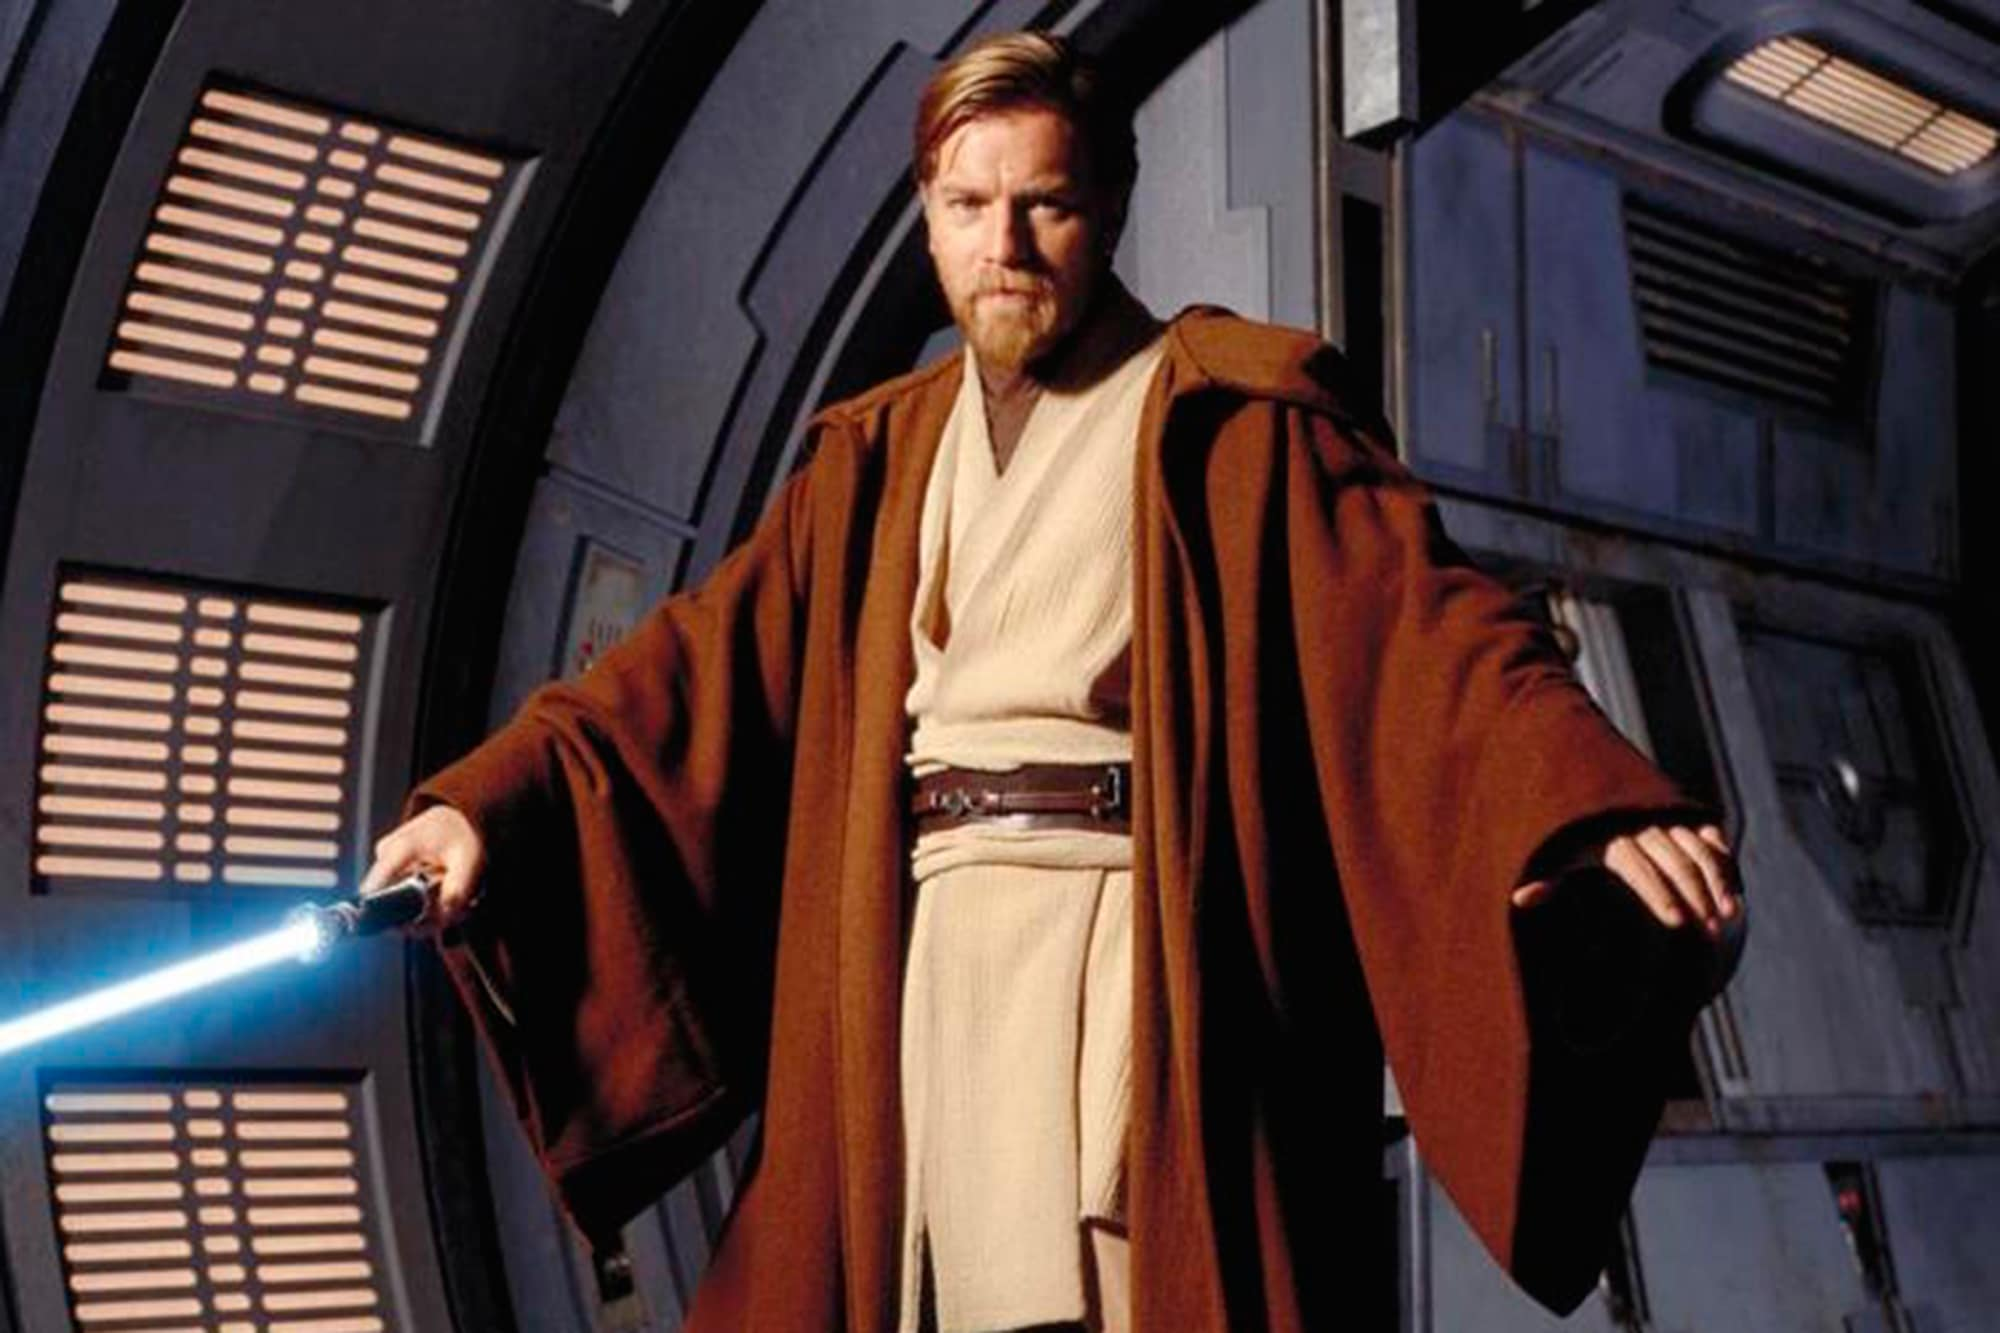 'Star Wars' Obi-Wan Kenobi movie in development at Disney